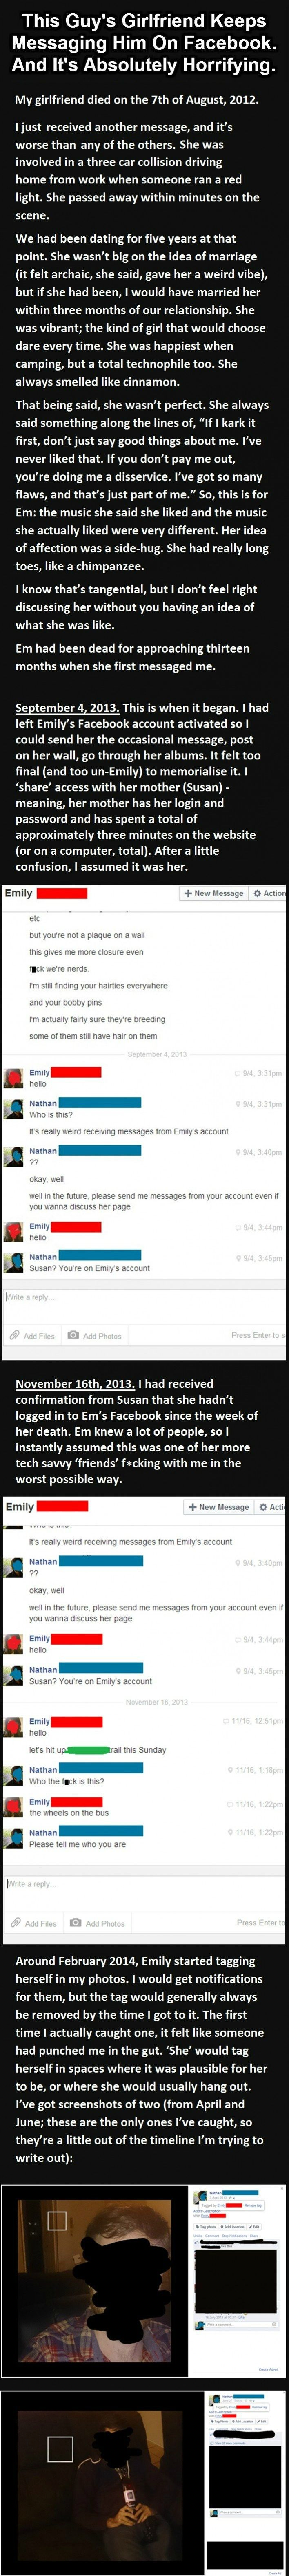 sister, don't read on pinterest. go to page for full story.  Scary read(had to be posted again) - Imgur